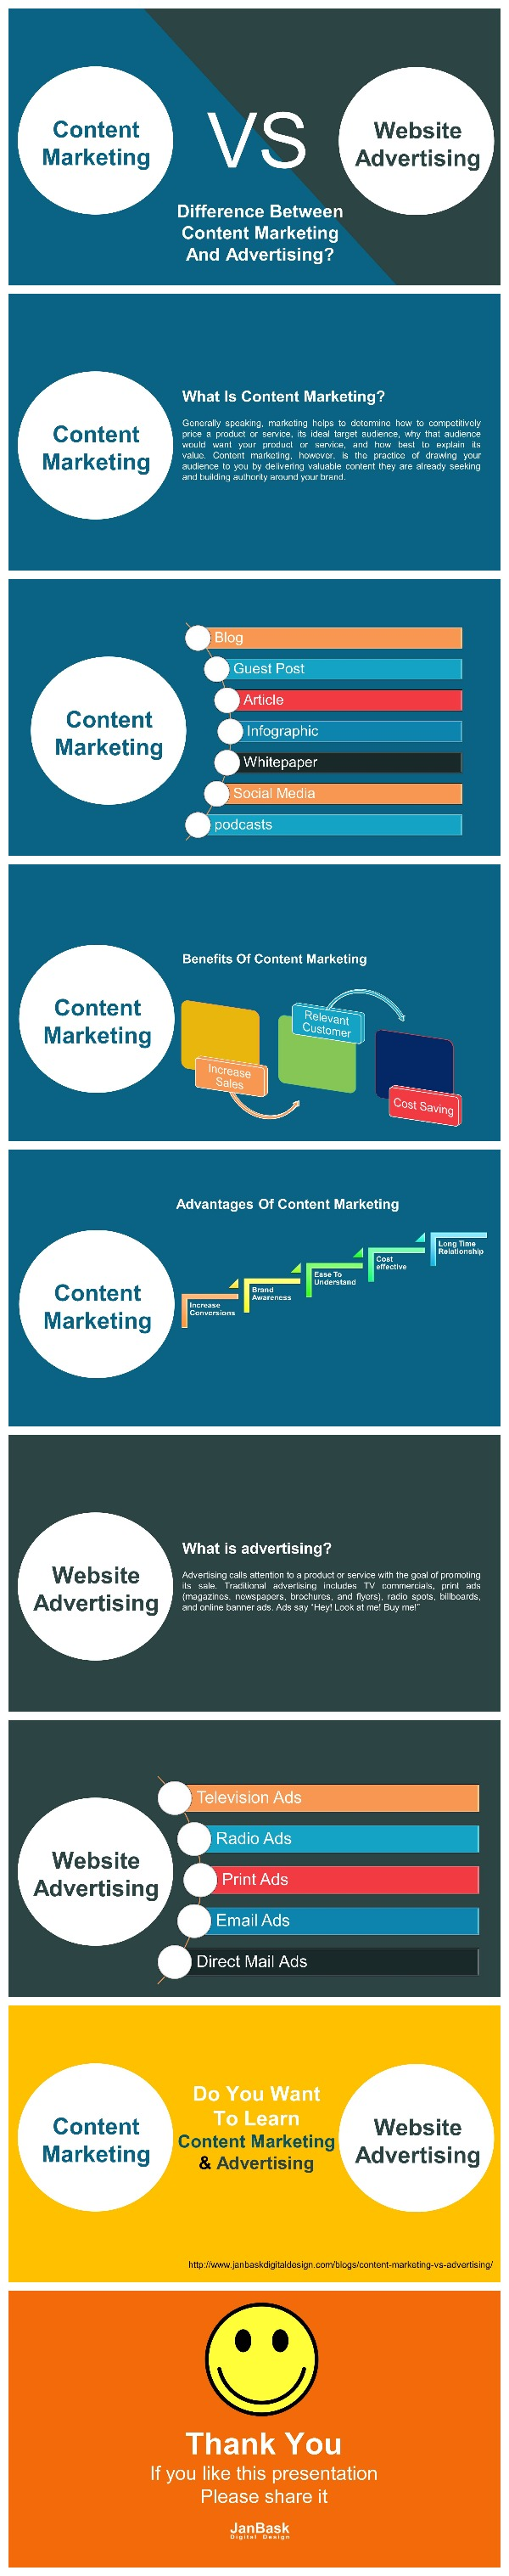 Difference Between Content Marketing and Advertising